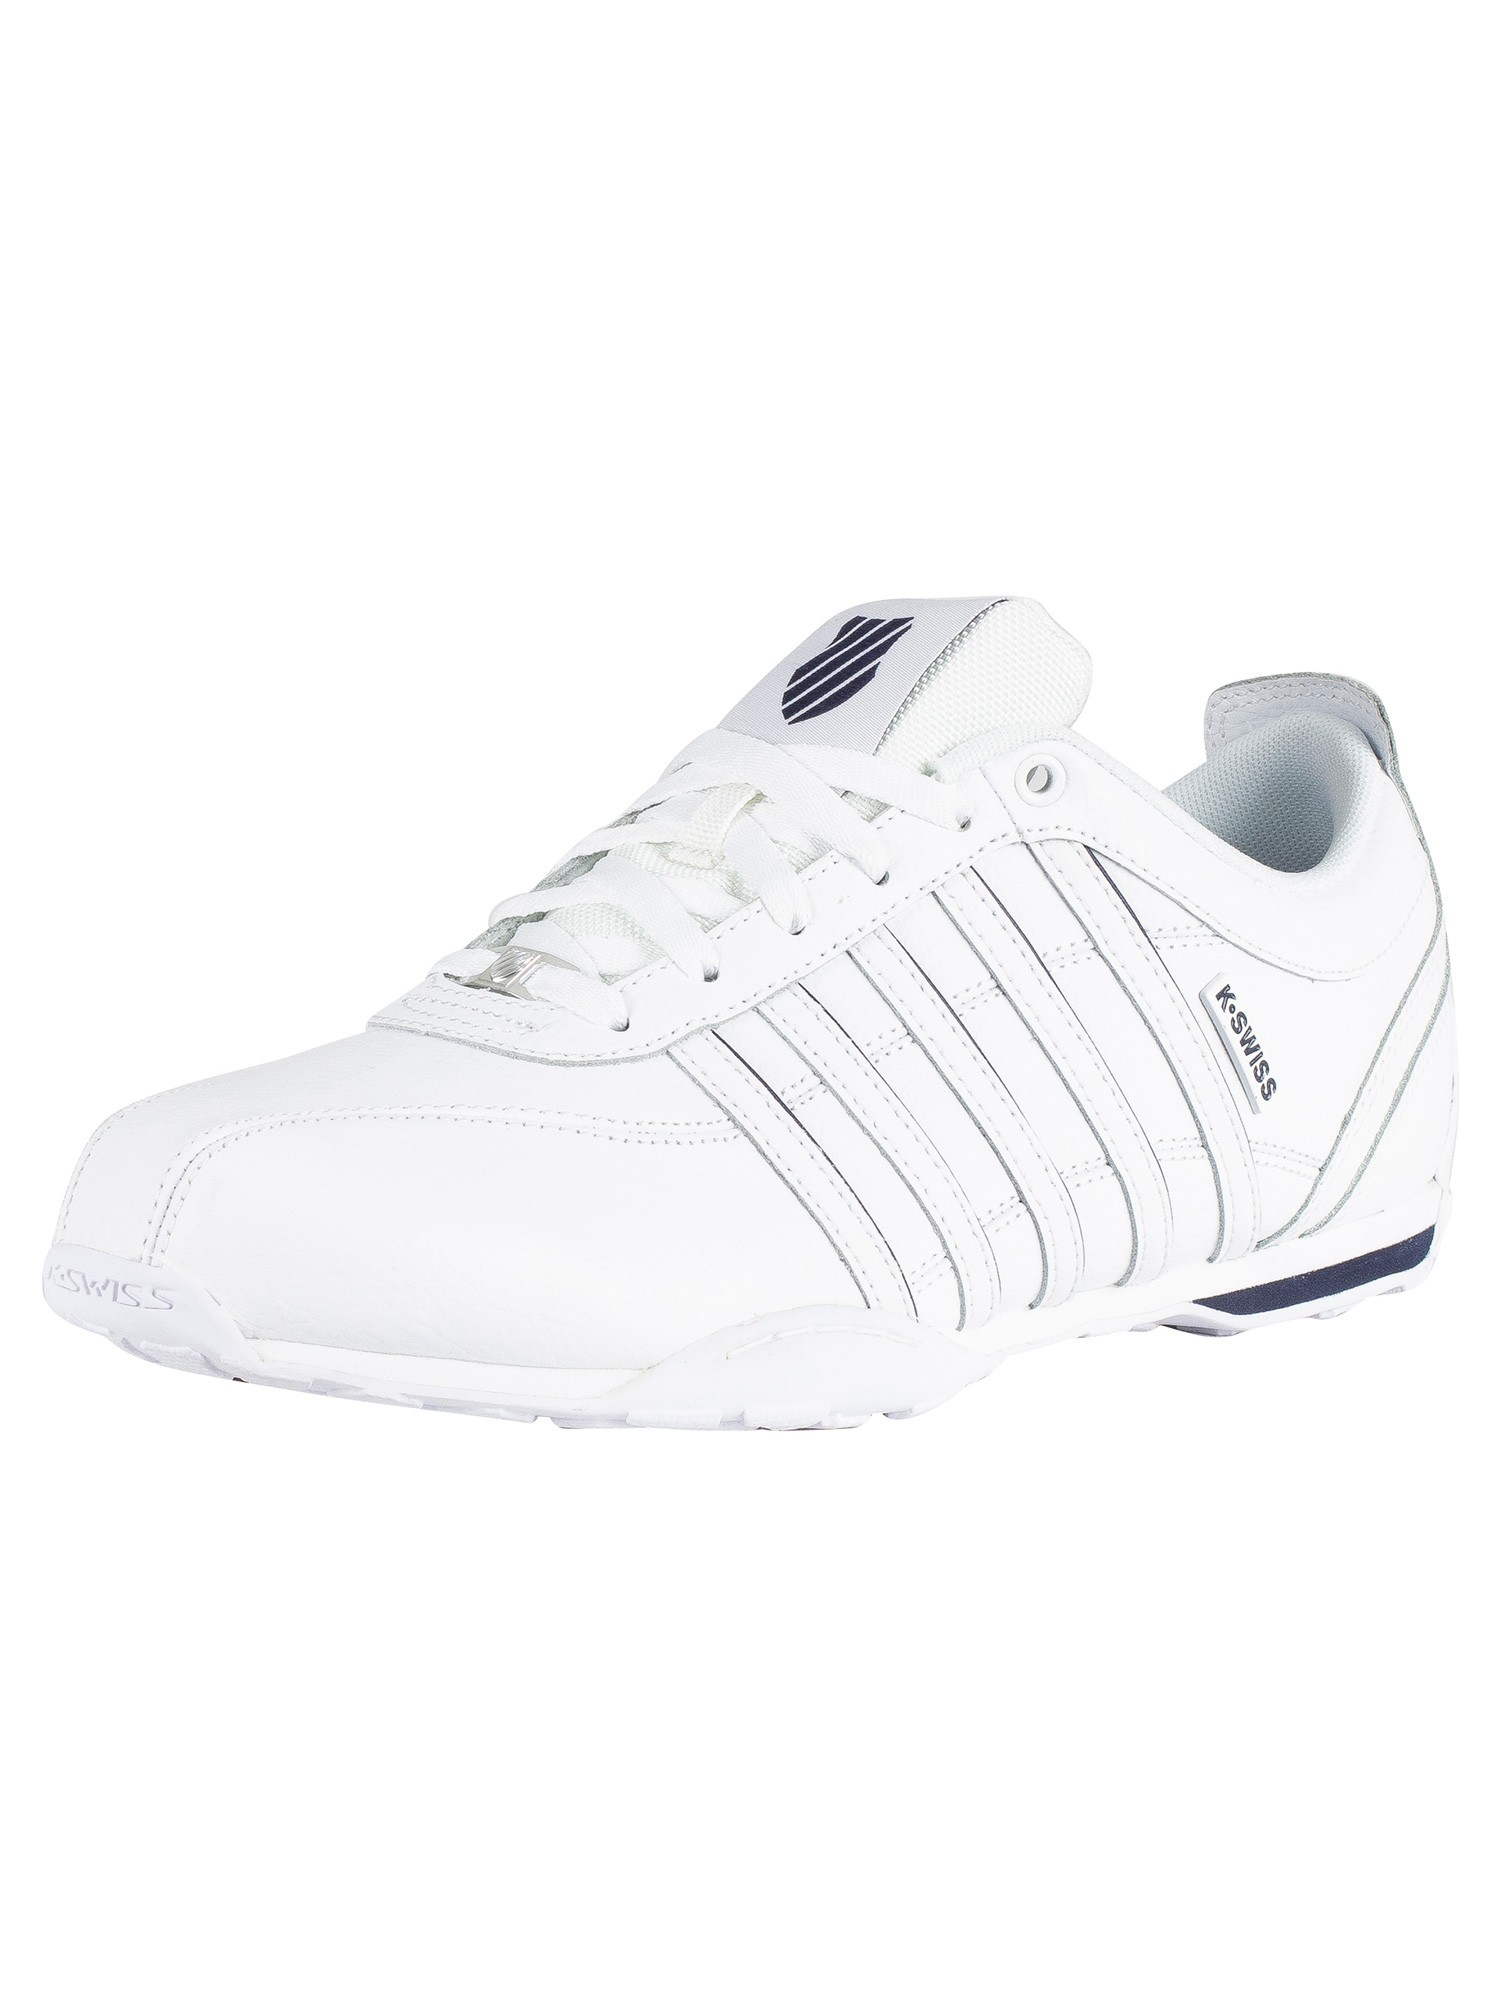 K Swiss White Navy Silver Arvee 1 5 Leather Trainers